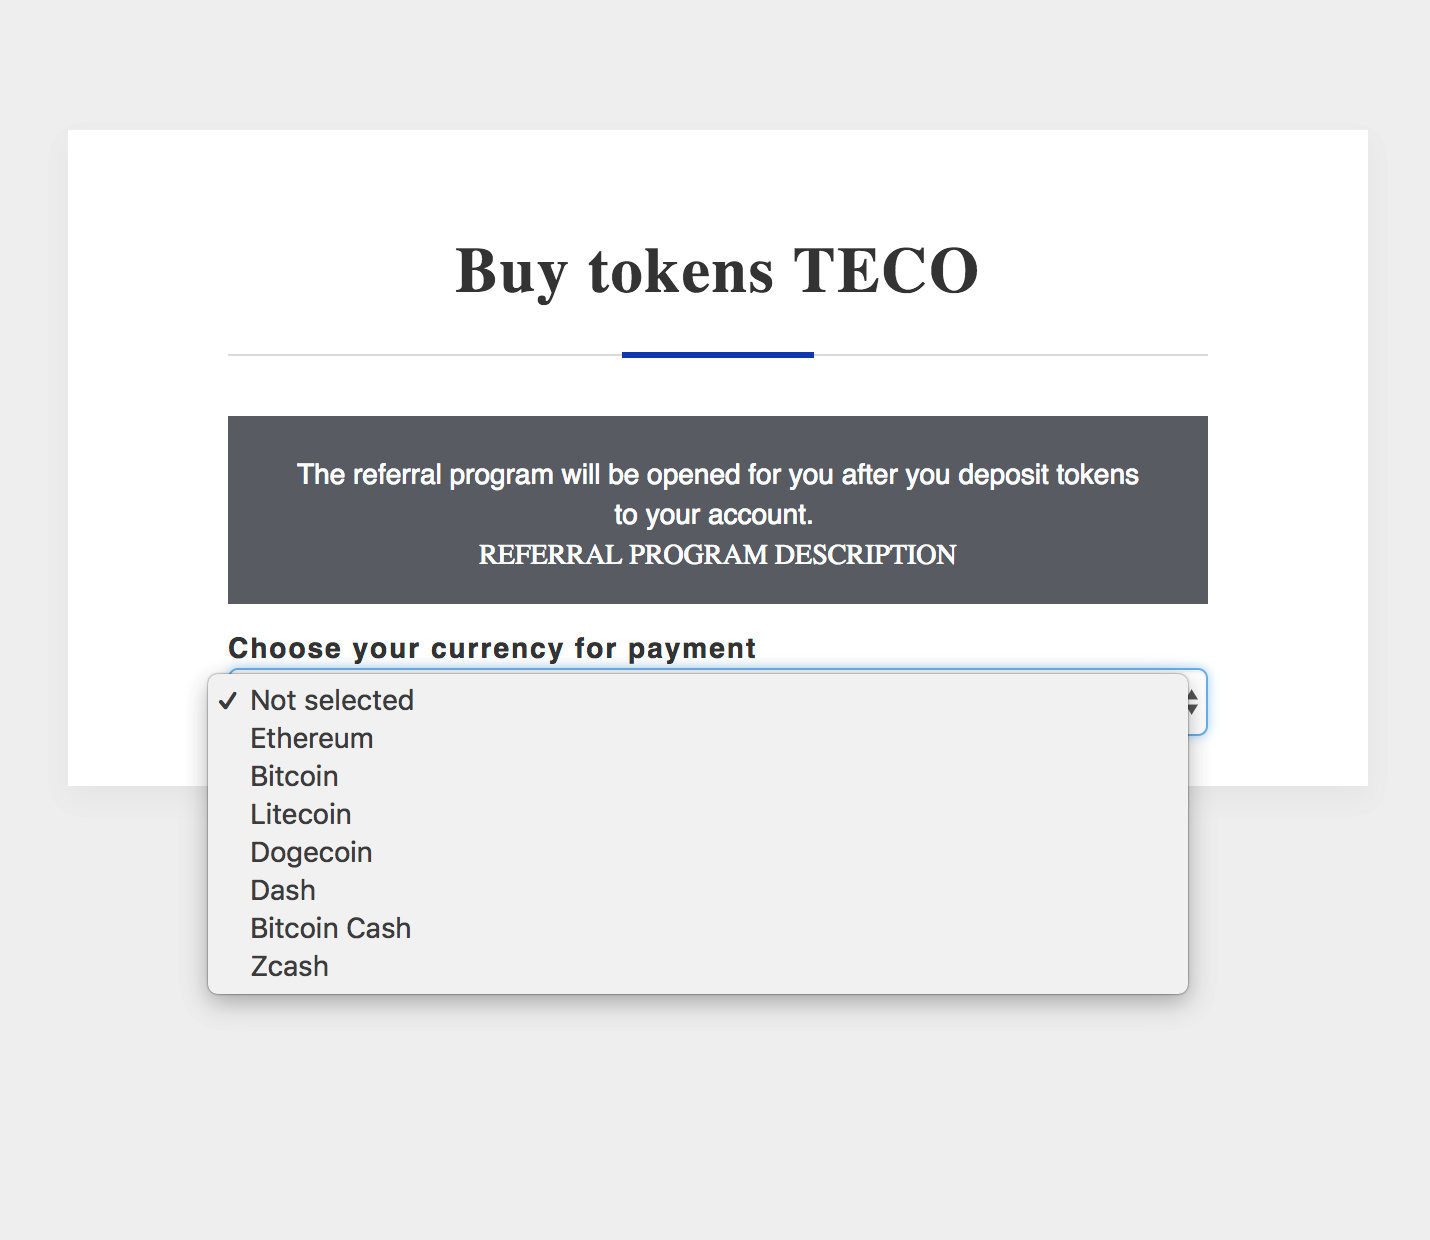 In addition to the purchase of digital coins of the project, the personal account allows you to connect a multi-level referral program which you can use to attract other investors and make a profit from their investments